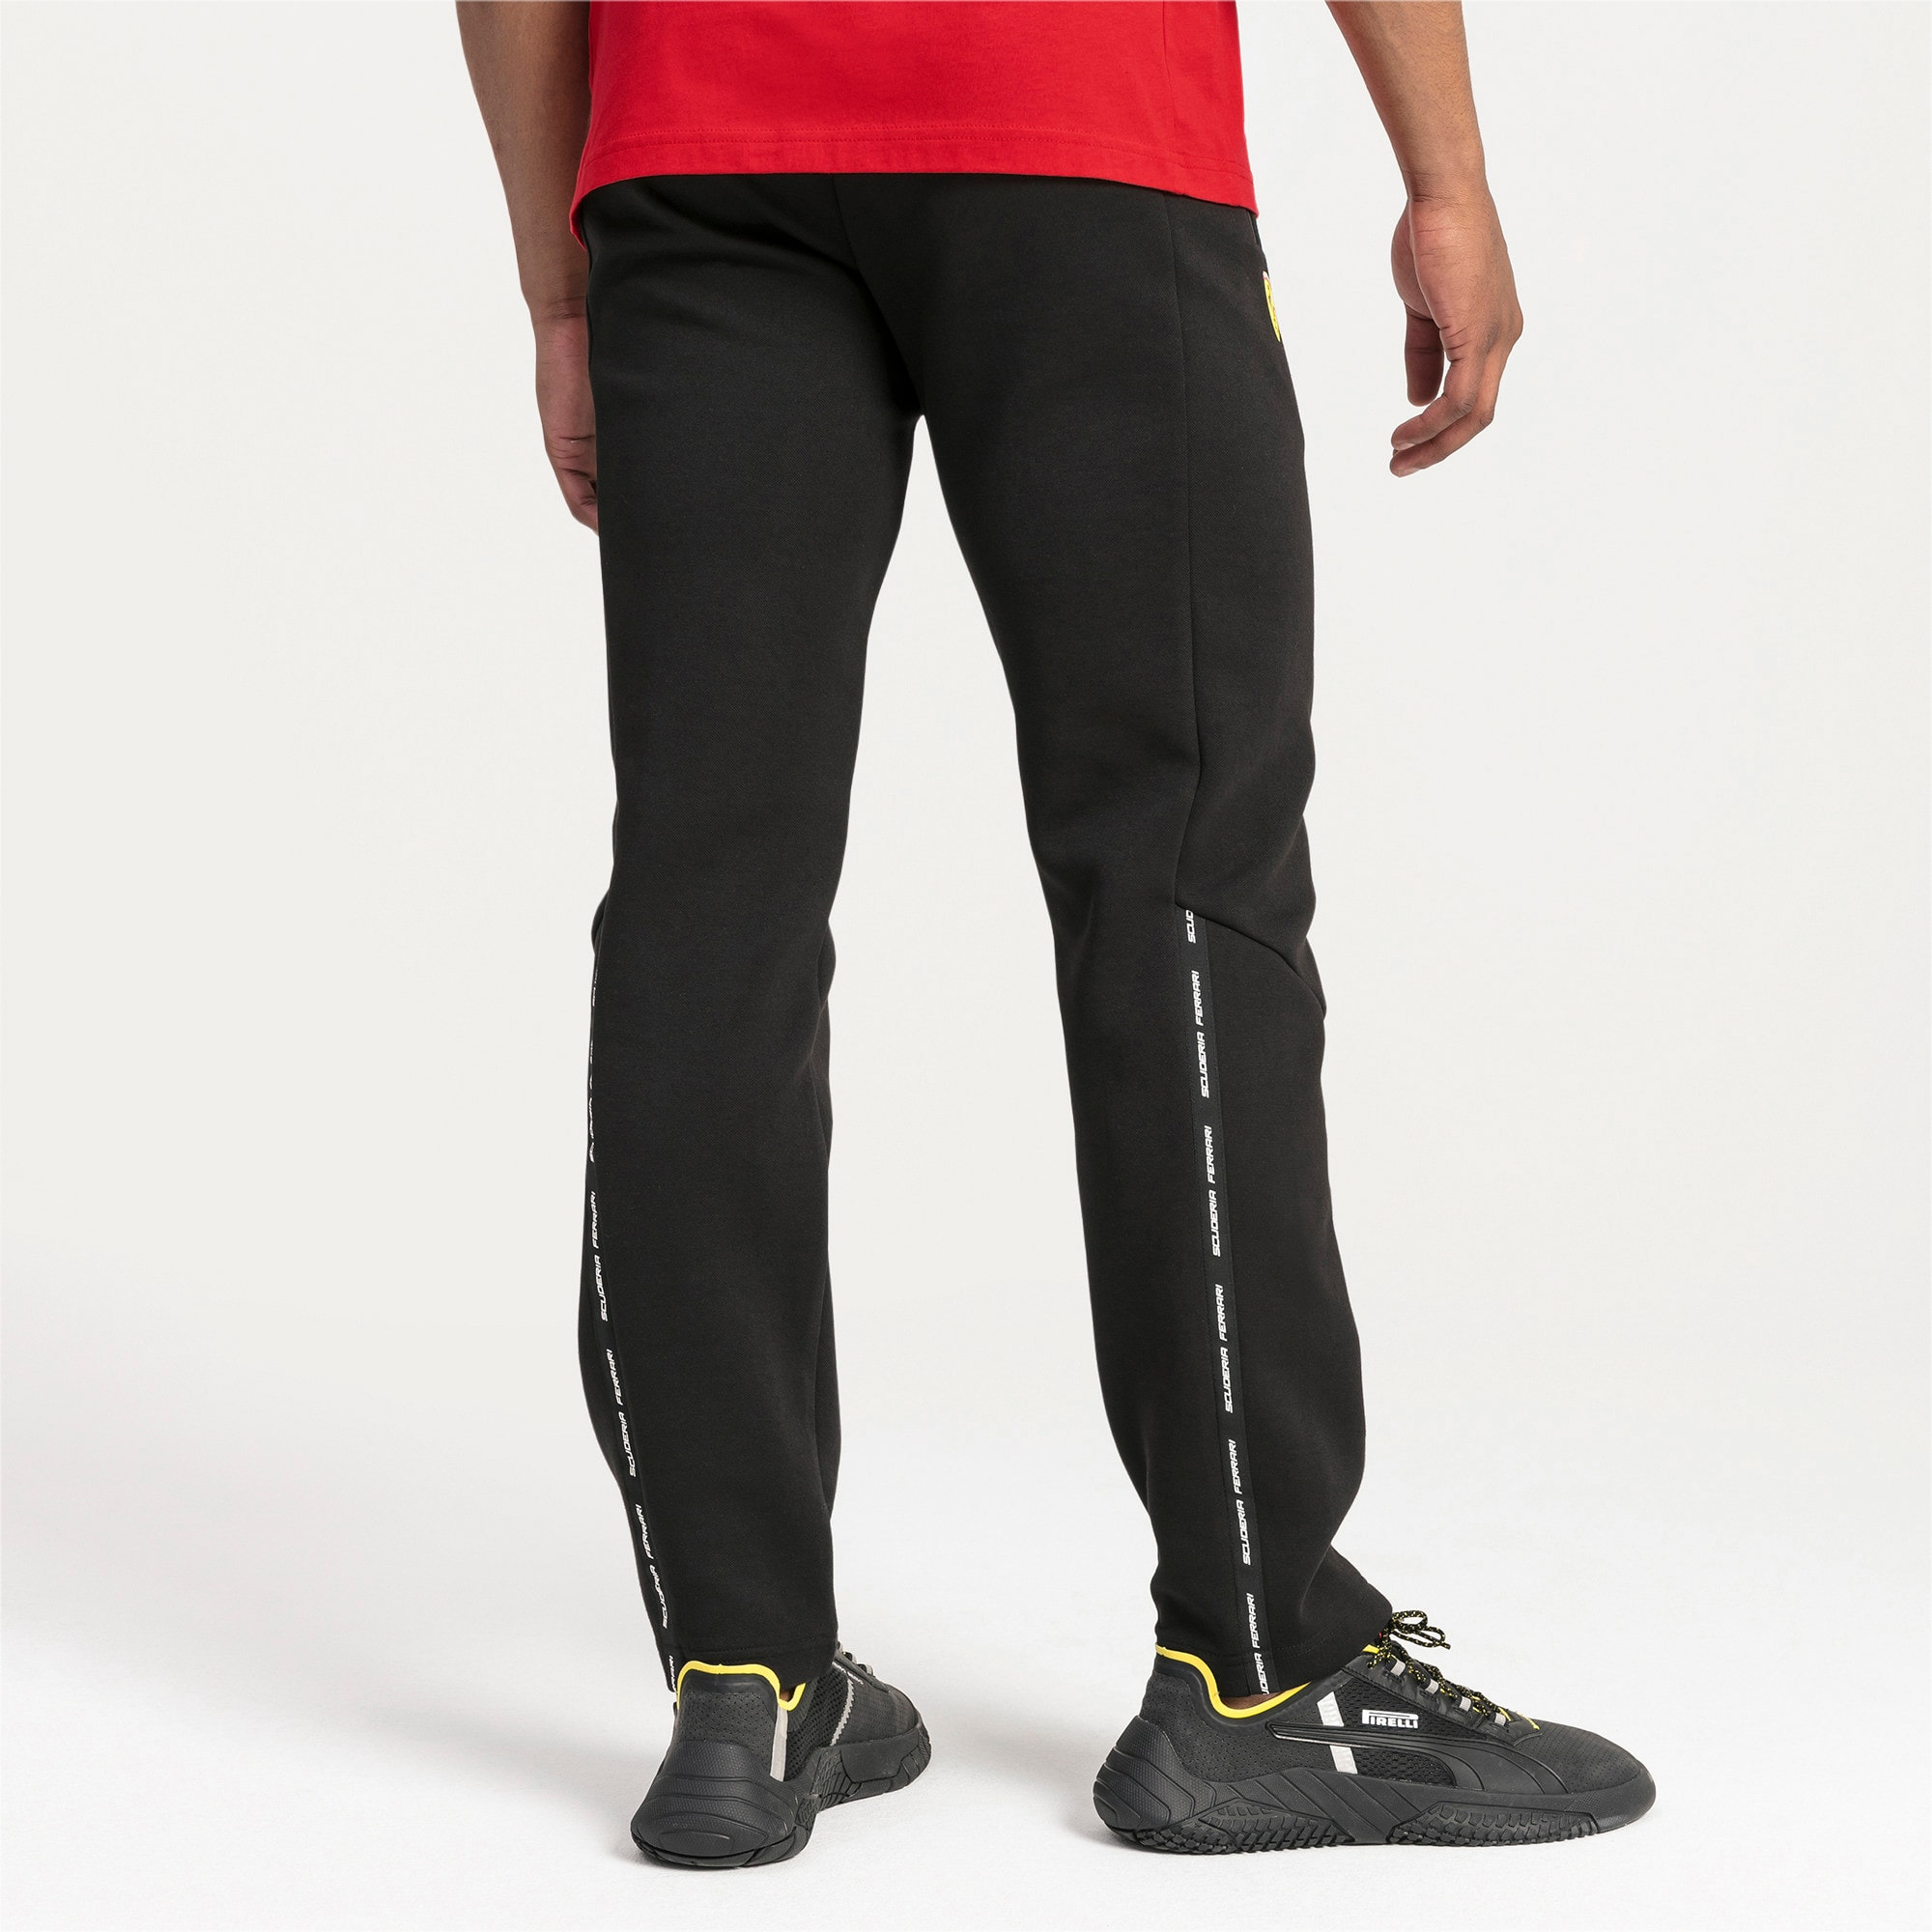 Thumbnail 2 of Ferrari Slim Men's Sweatpants, Puma Black, medium